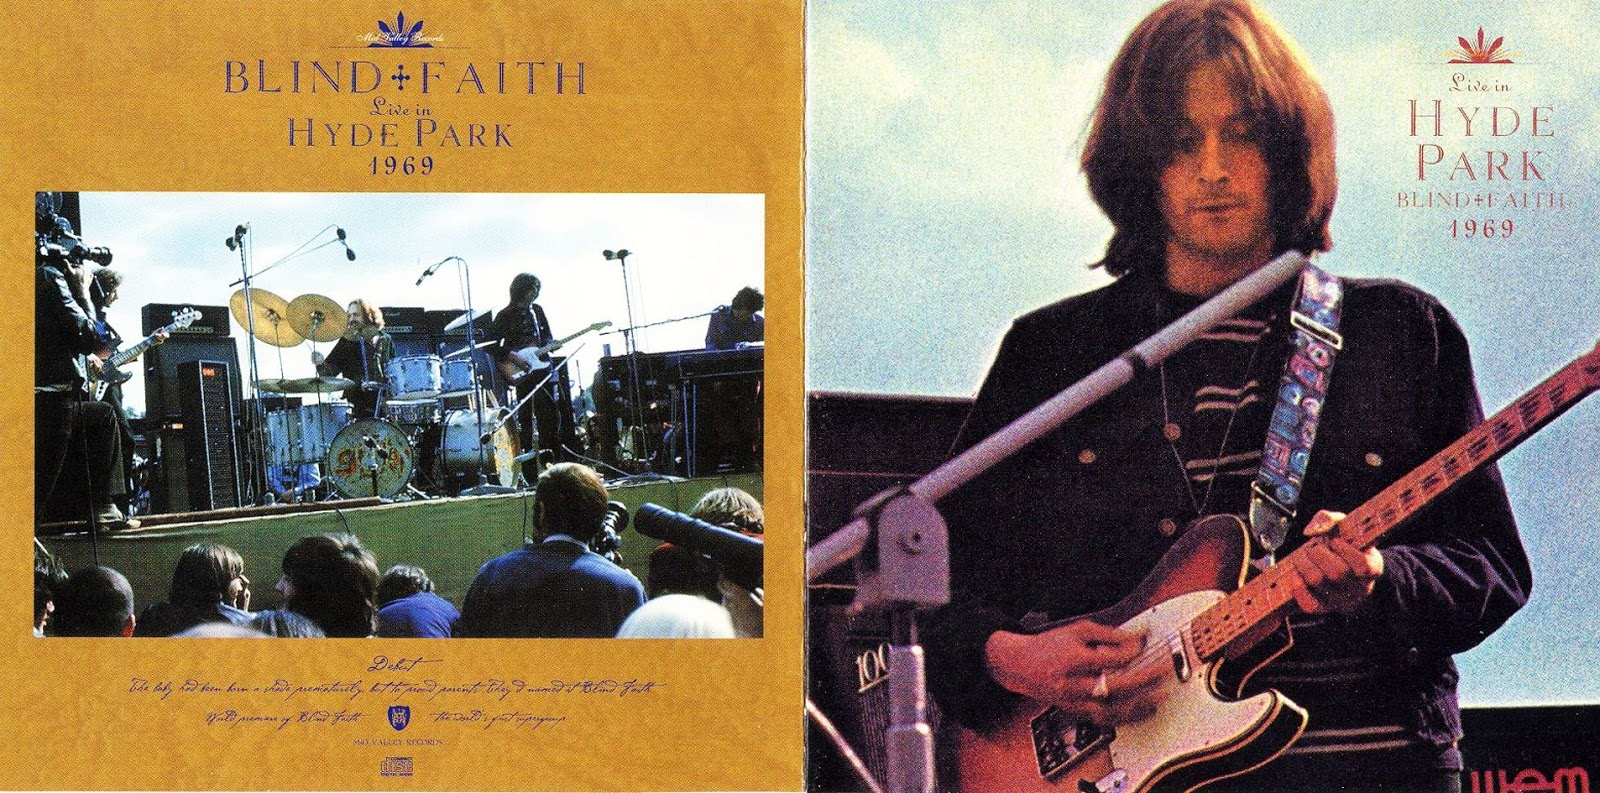 The Witchwood Records Blind Faith Hyde Park 1969